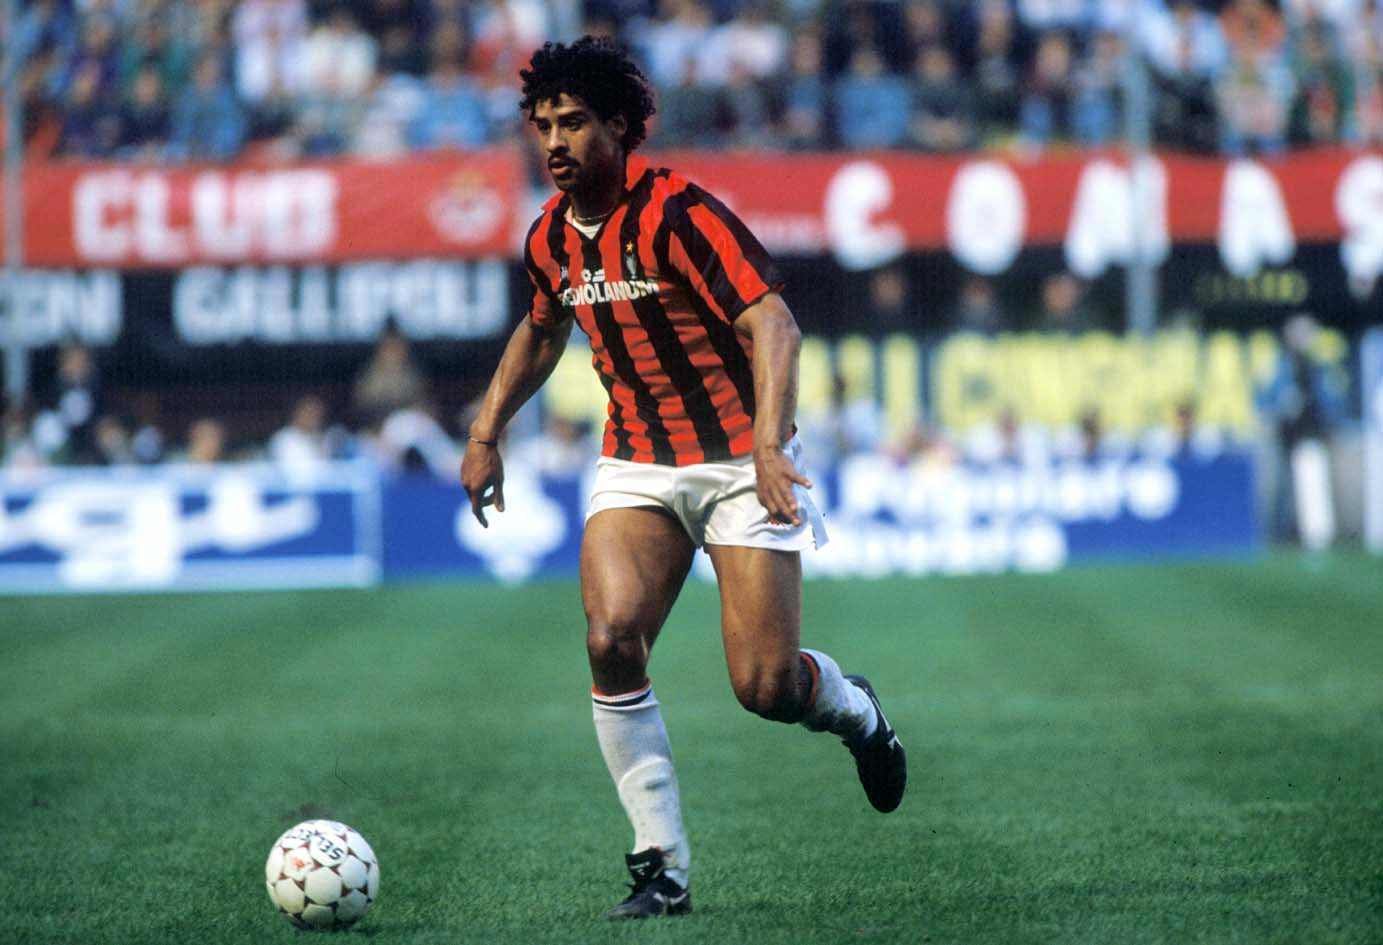 Frank Rijkaard - The Legacy of Football's Street-fighting Ballerino